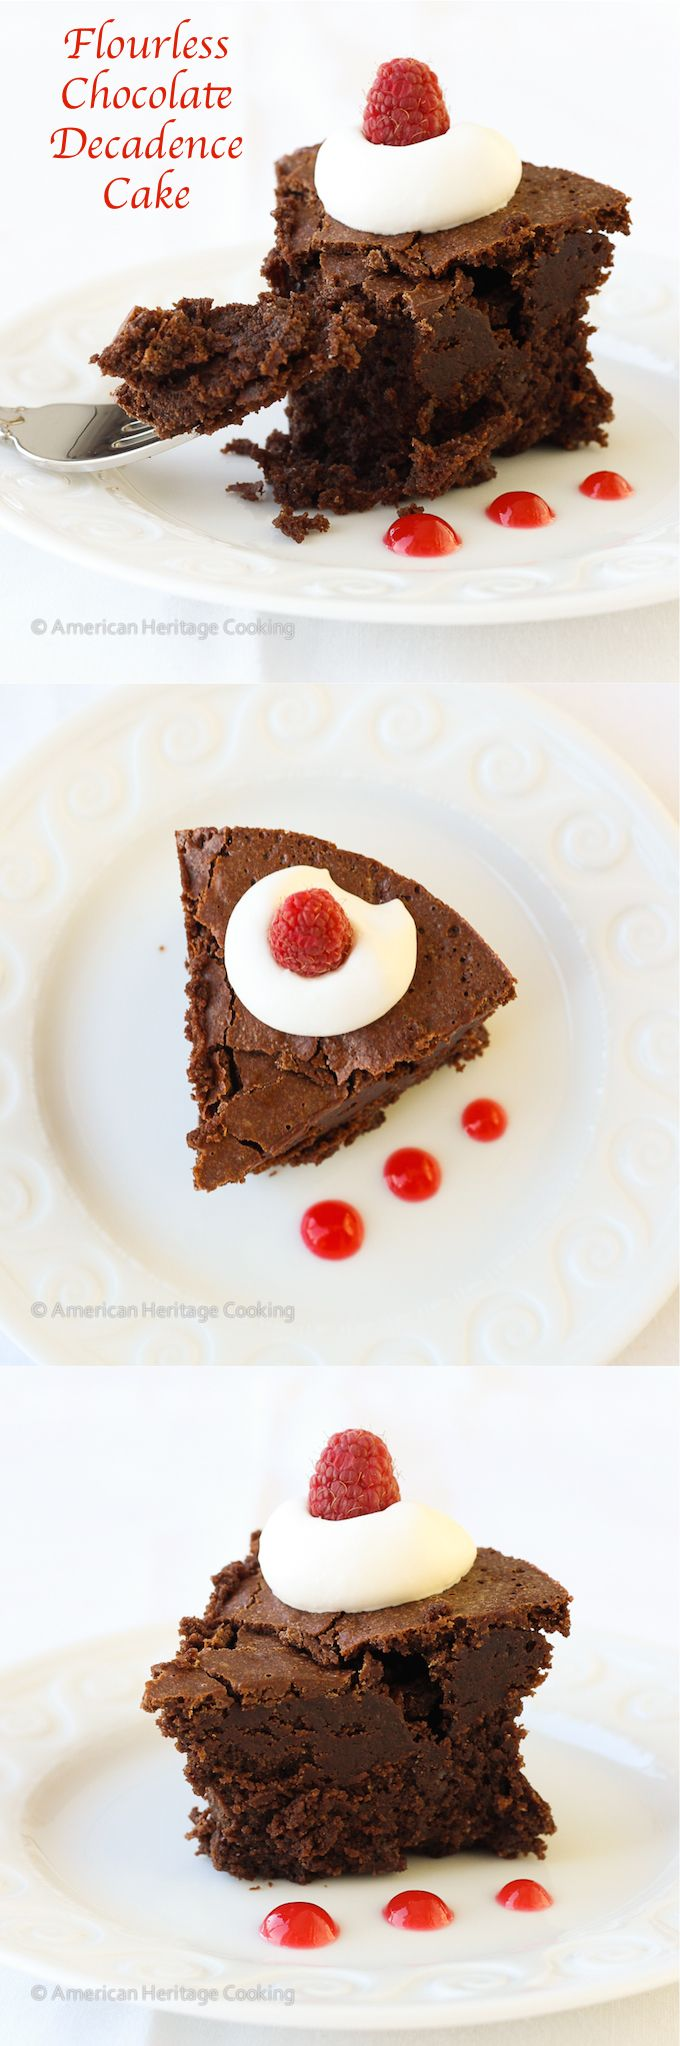 Flourless Chocolate Decadence Cake   This is the best flourless chocolate cake I have ever tried! Dense, intensely chocolatey!